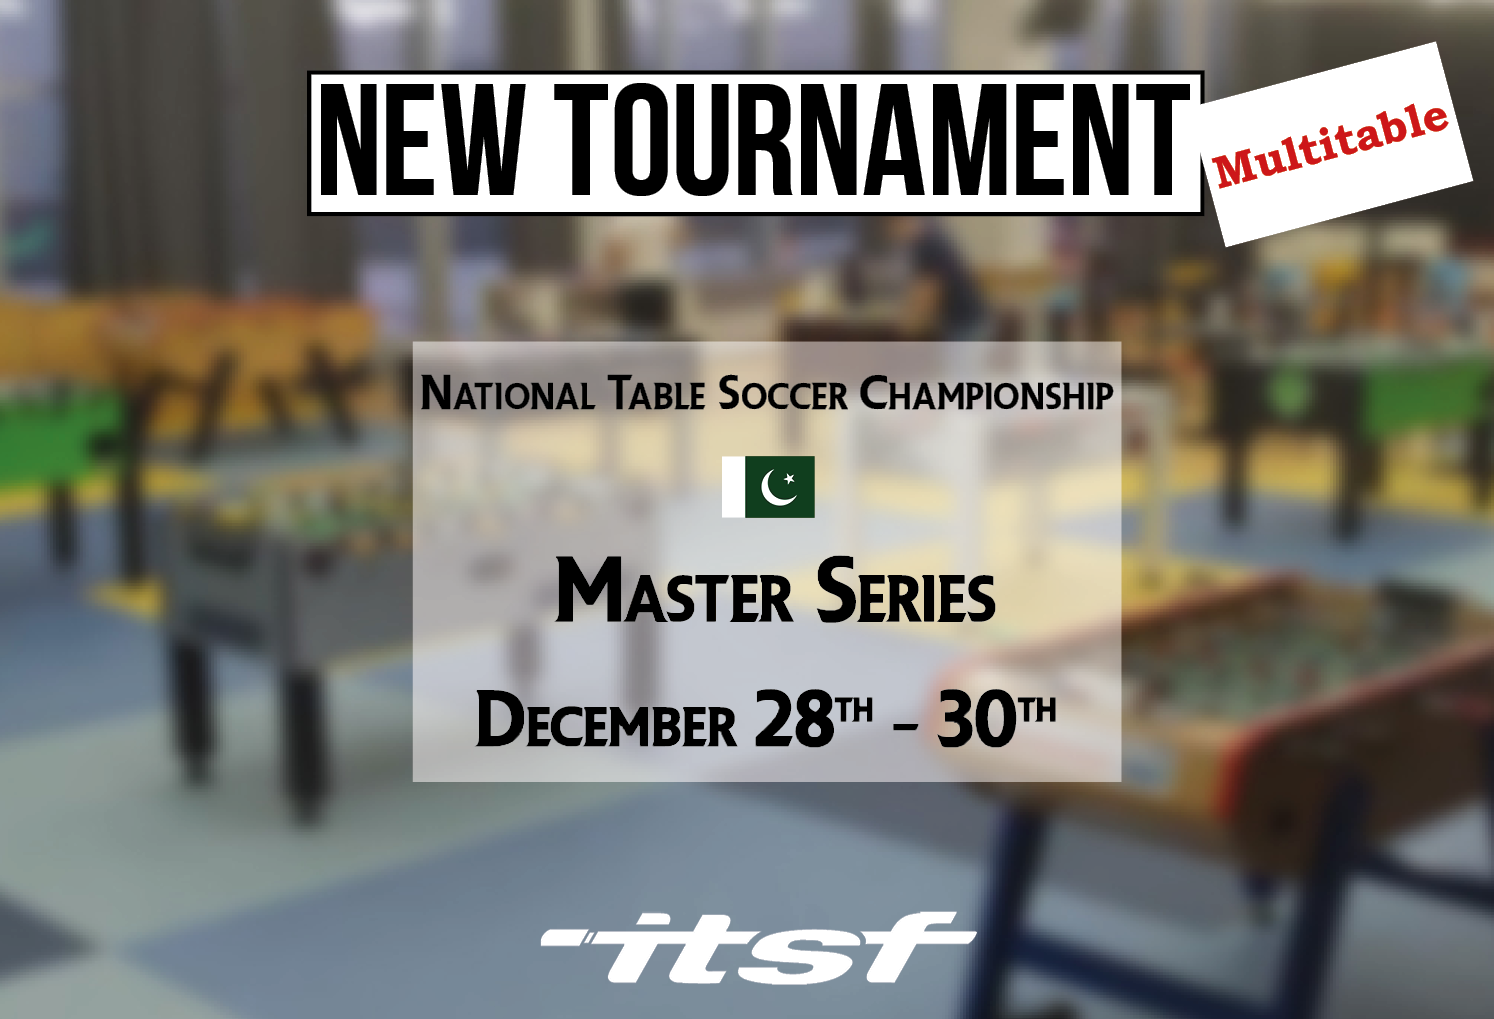 New tournament in Pakistan